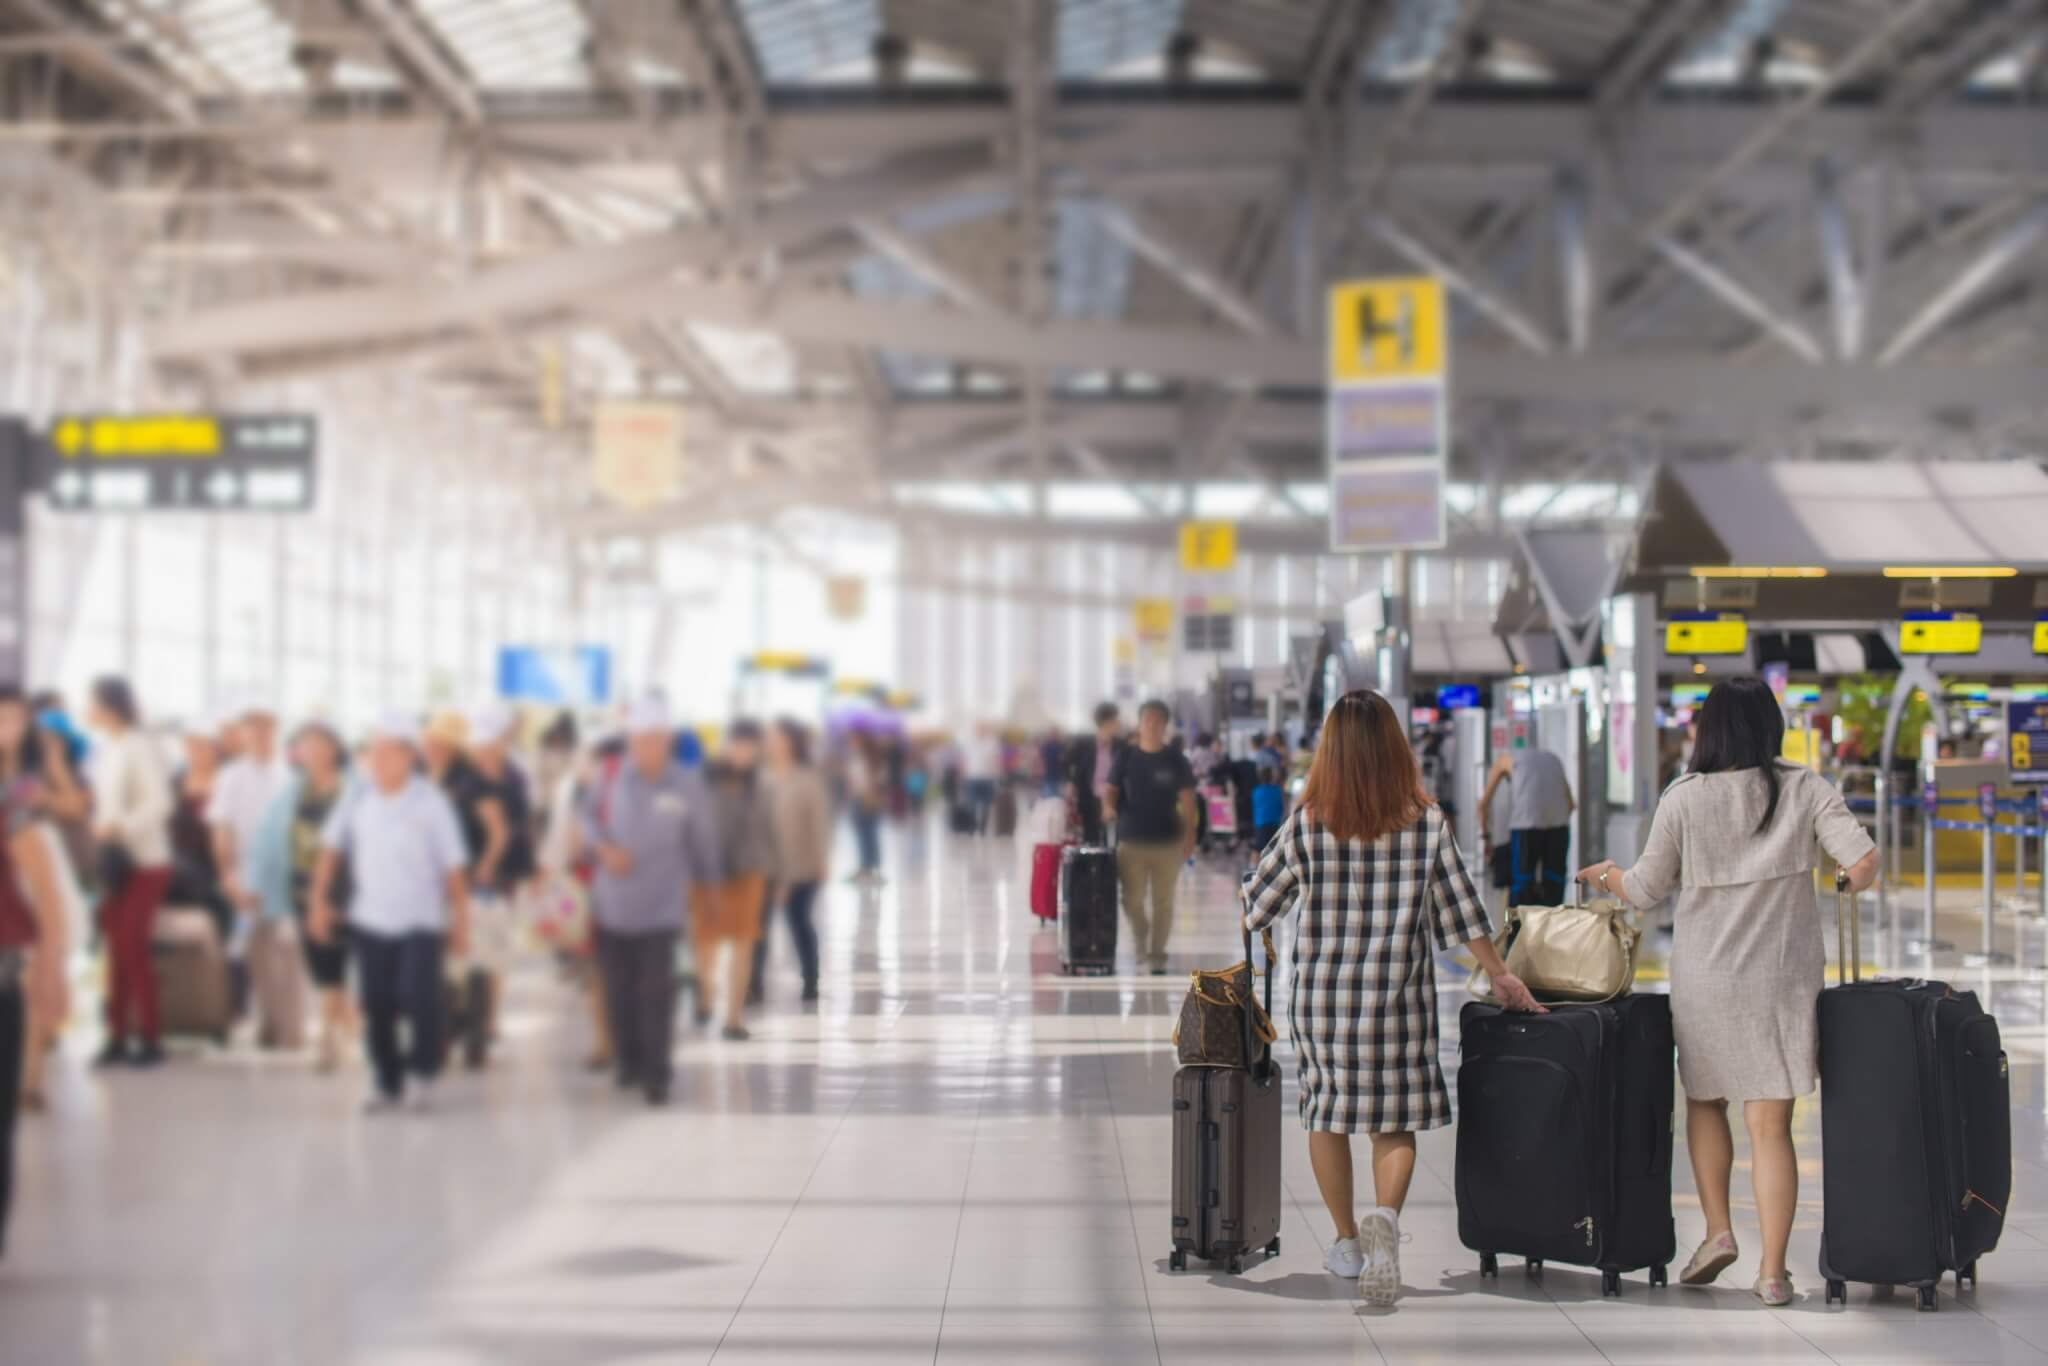 Aleksandra Traczyk speaks to the National about how British firms can attempt to minimise disruption to their business, with staff taking holidays abroad being forced to quarantine